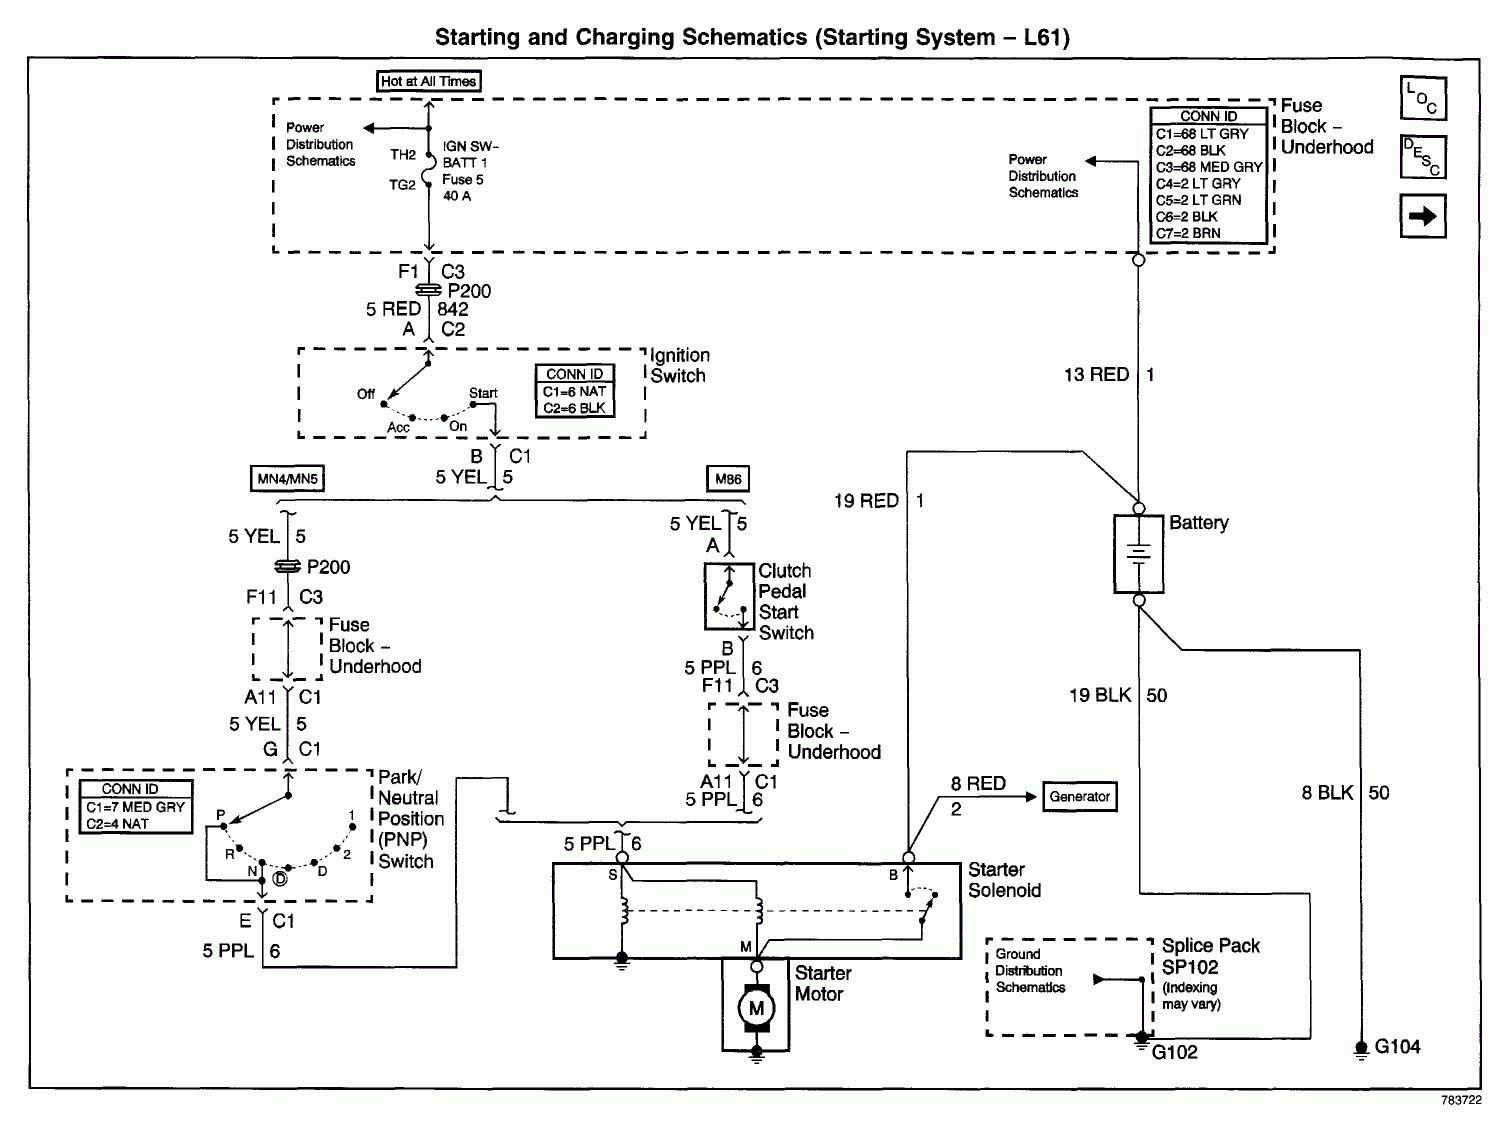 Oldsmobile Transmission Diagrams Wiring Library 98 Intrigue Fuse Box 2001 Engine Diagram Schematic Detailed Rh Highcliffemedicalcentre Com 1998